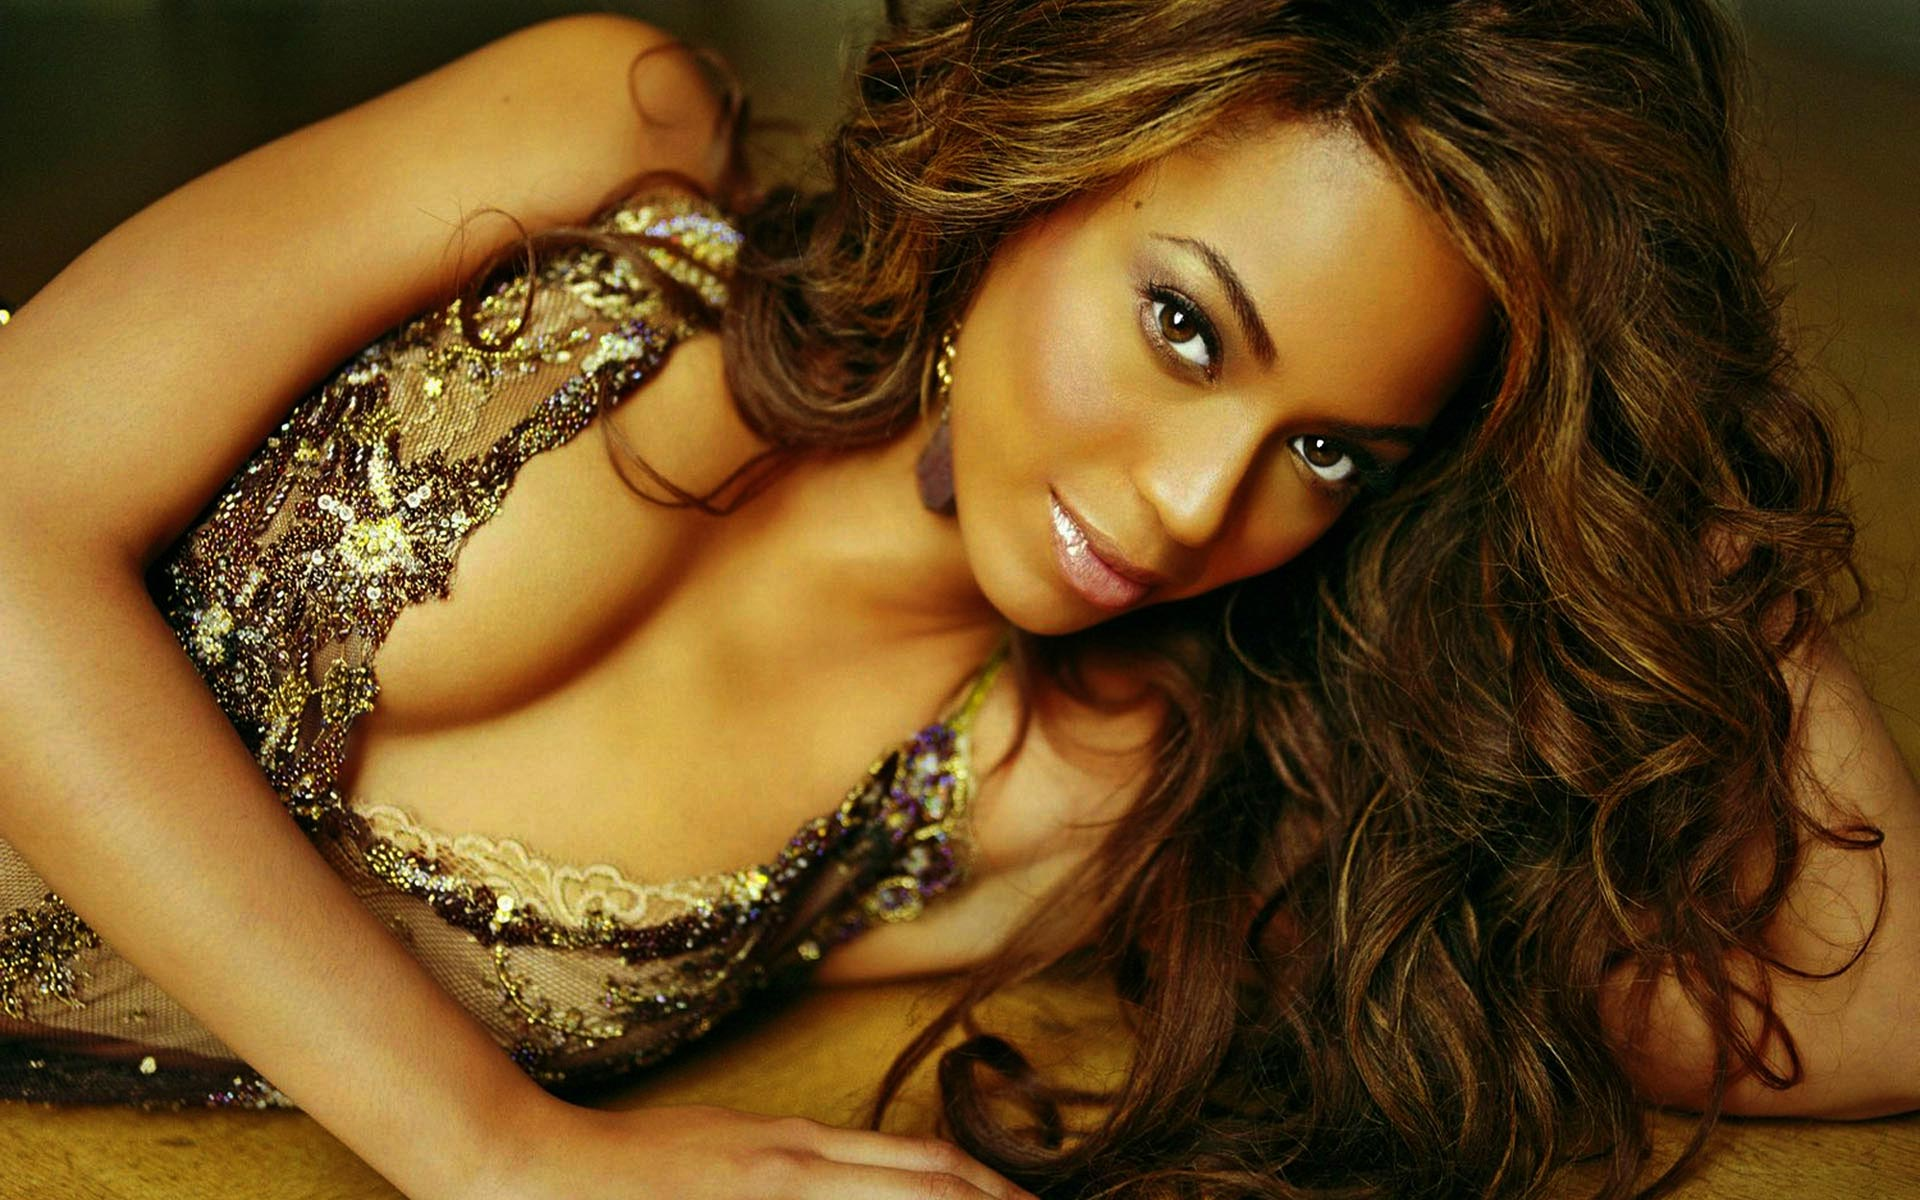 beyonce wallpapers Sexy